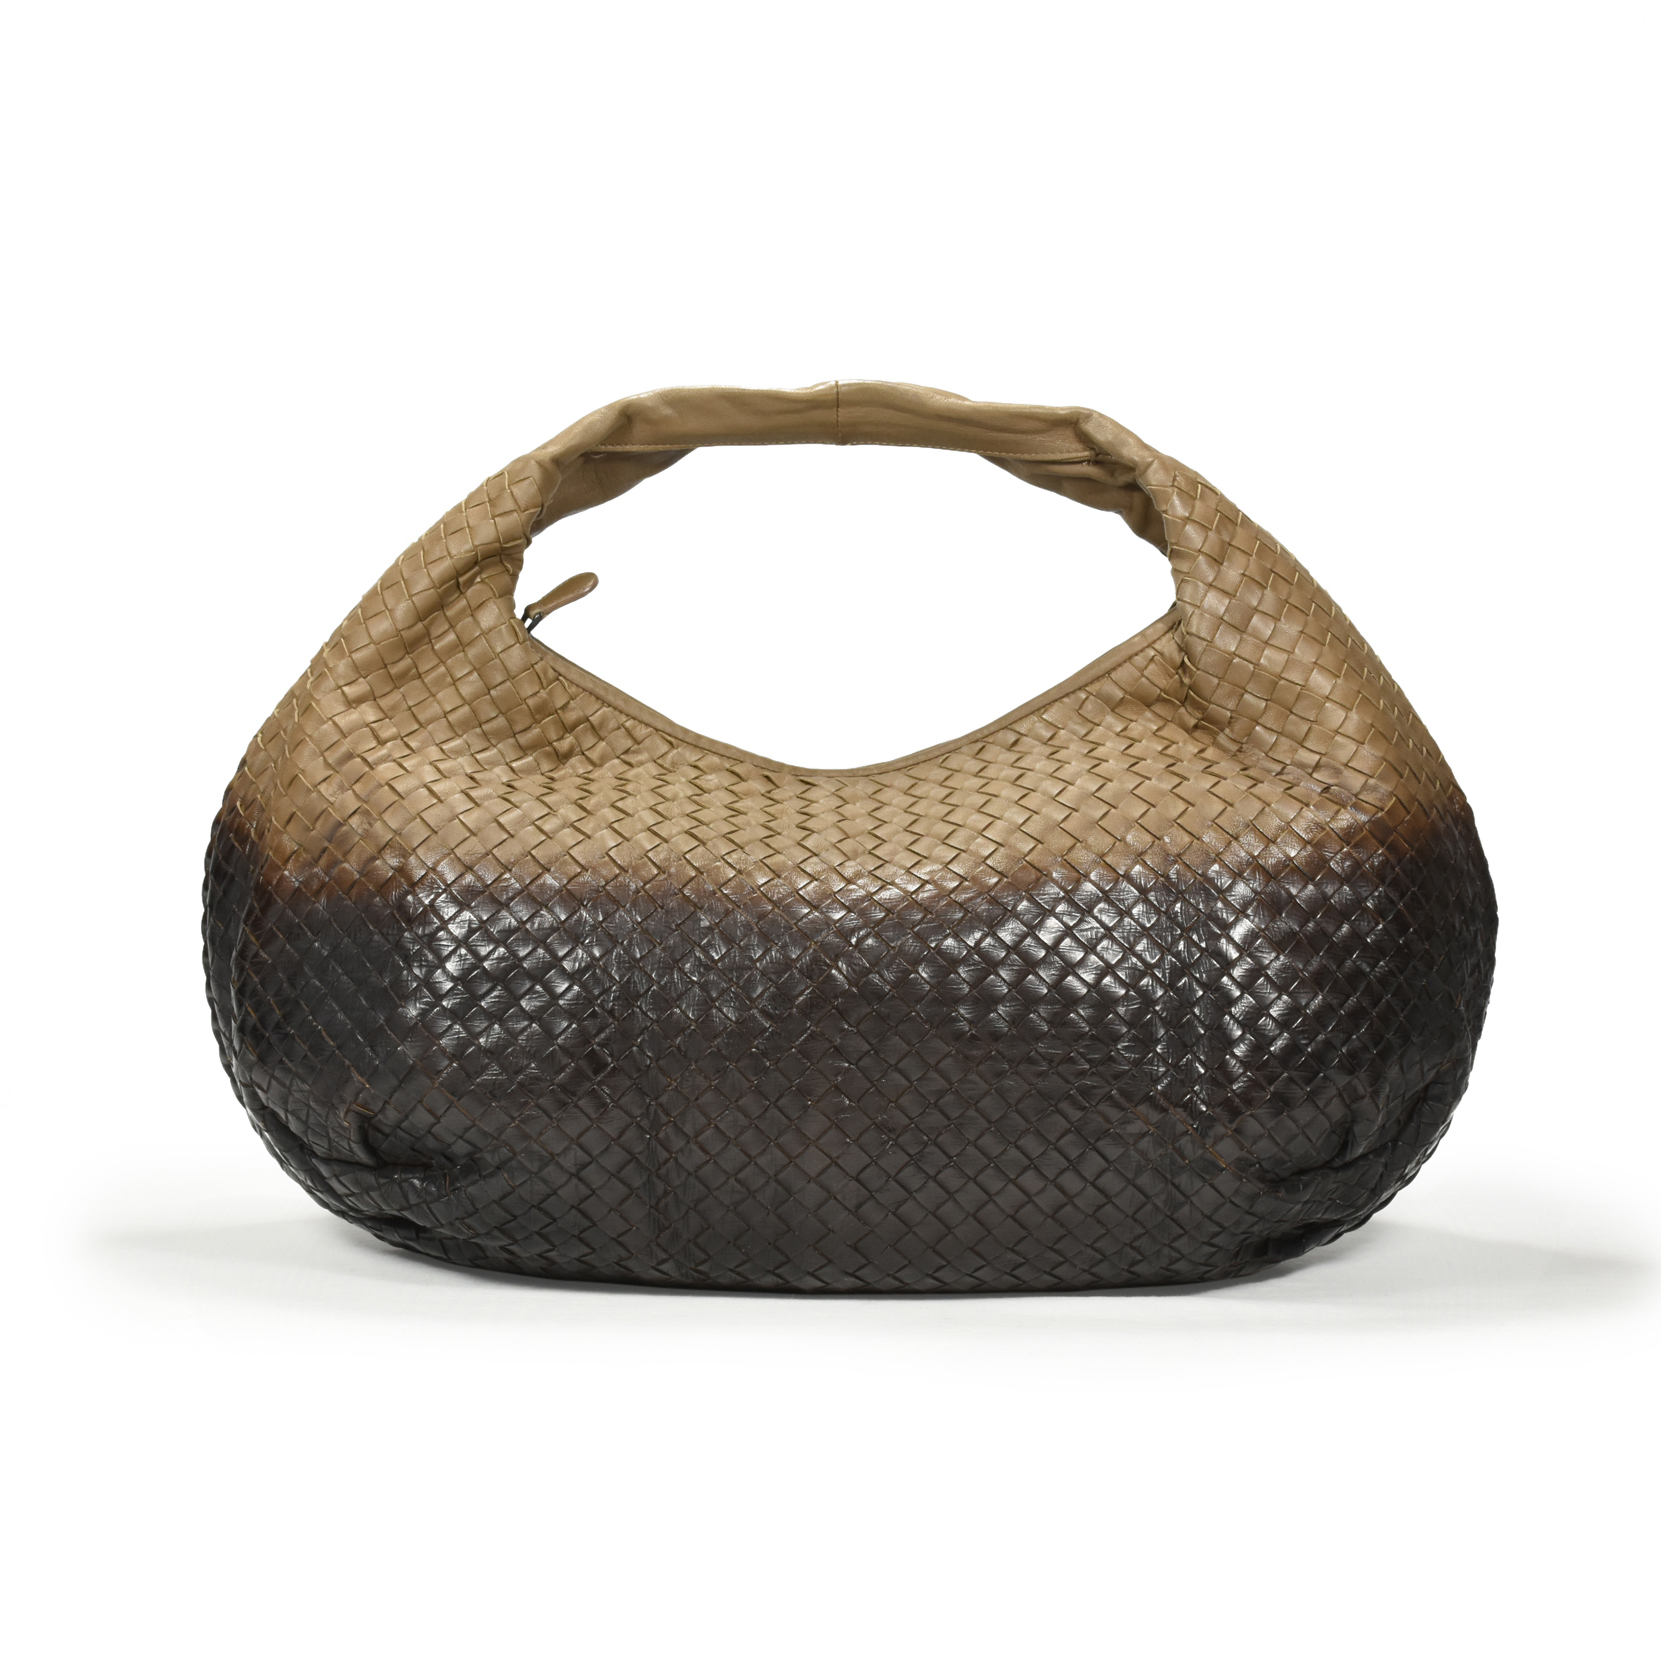 e26735557e82e9 Authentic Second Hand Bottega Veneta Intrecciato Large Ombre Hobo Bag  (PSS-355-00007) | THE FIFTH COLLECTION